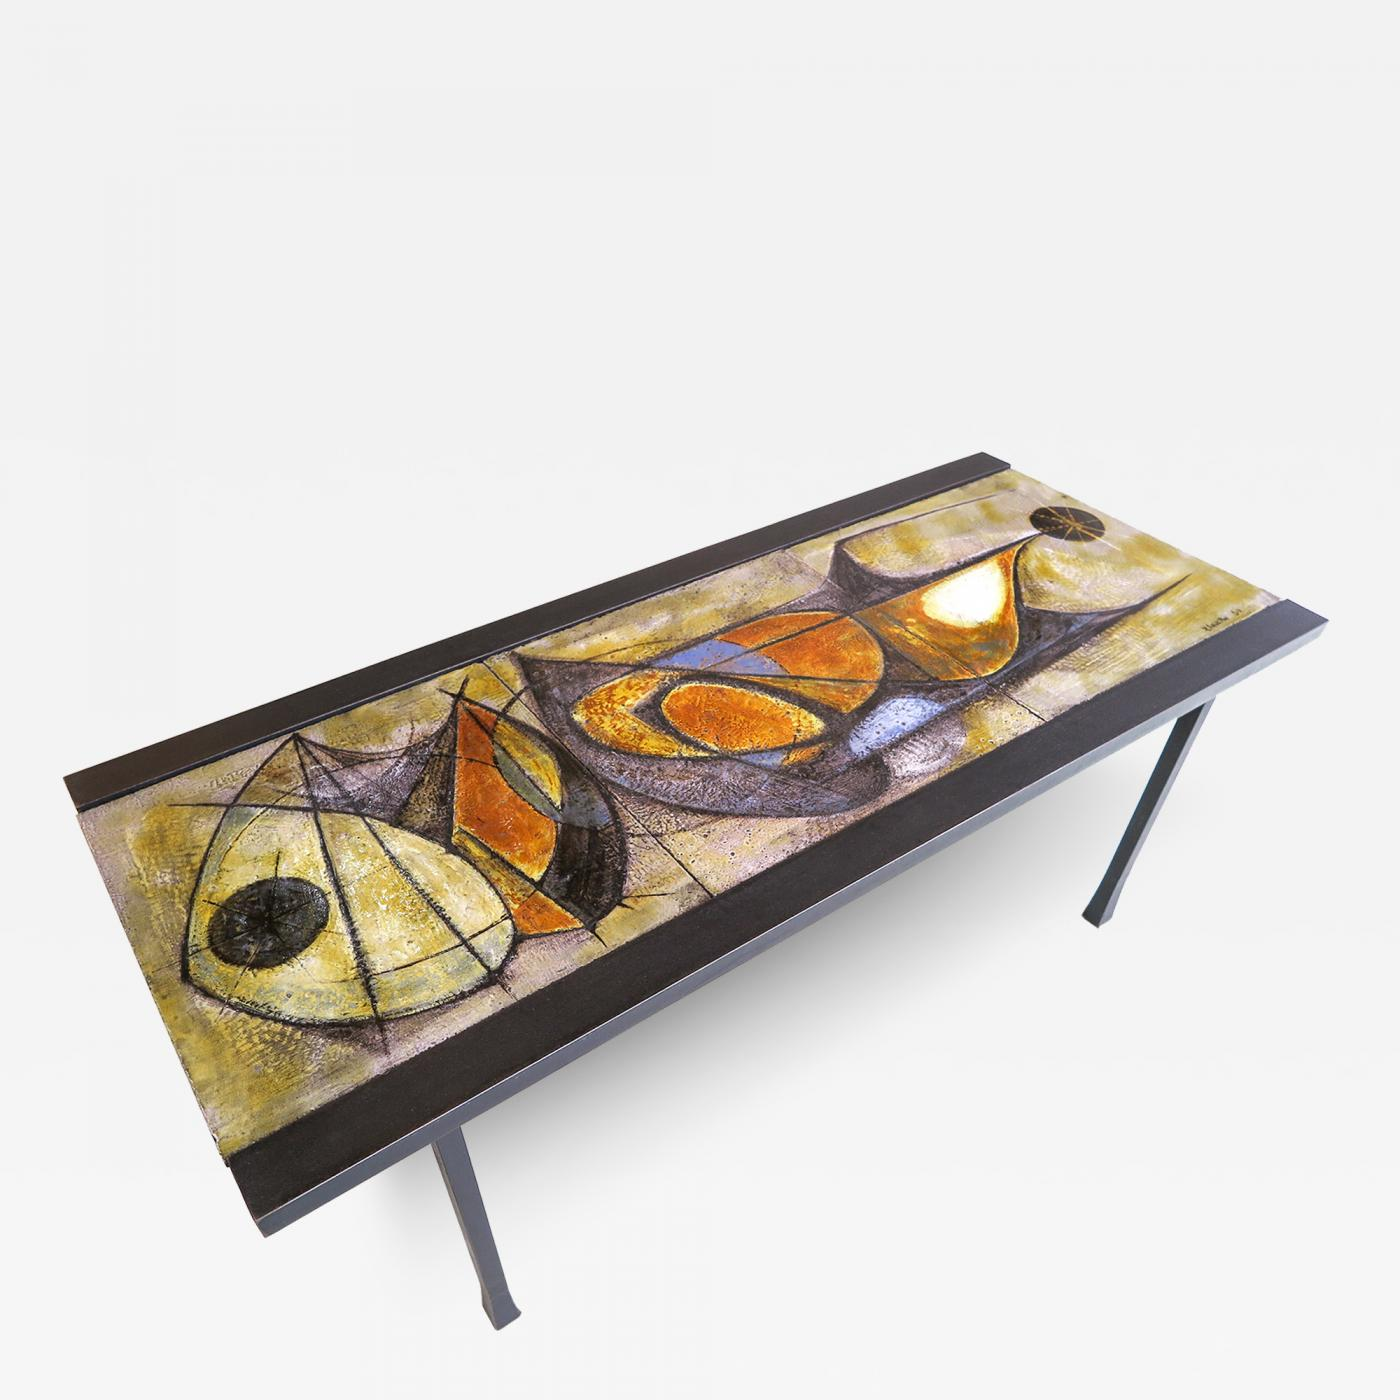 Pierre SaintPaul French Ceramic Coffee Table by artist Pierre